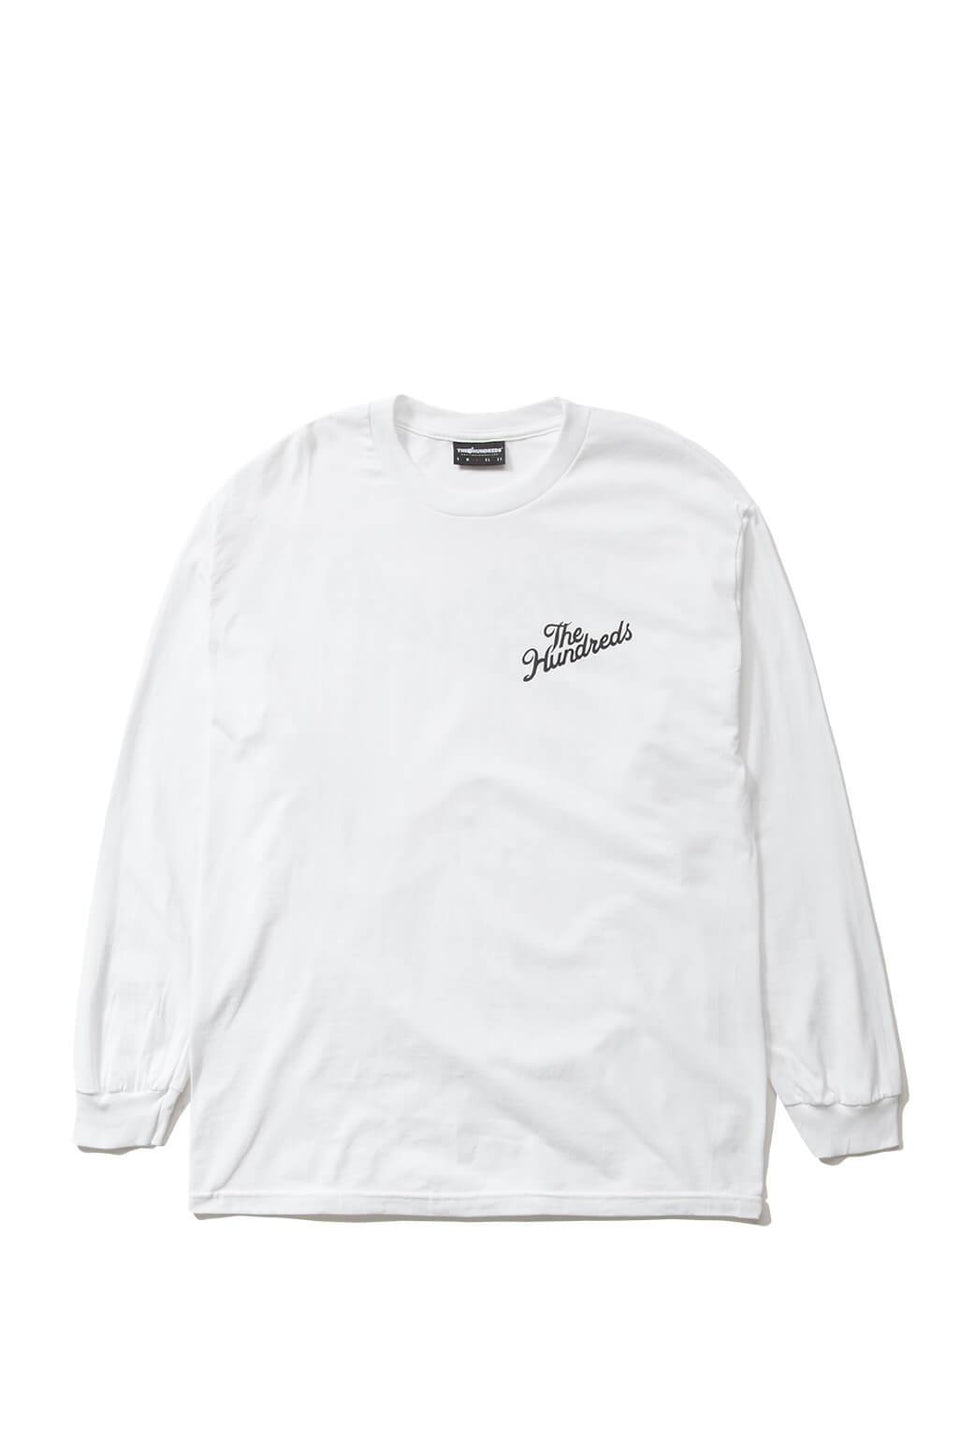 The Hundreds Forever Slant Crest Longsleeve Shirt White Front